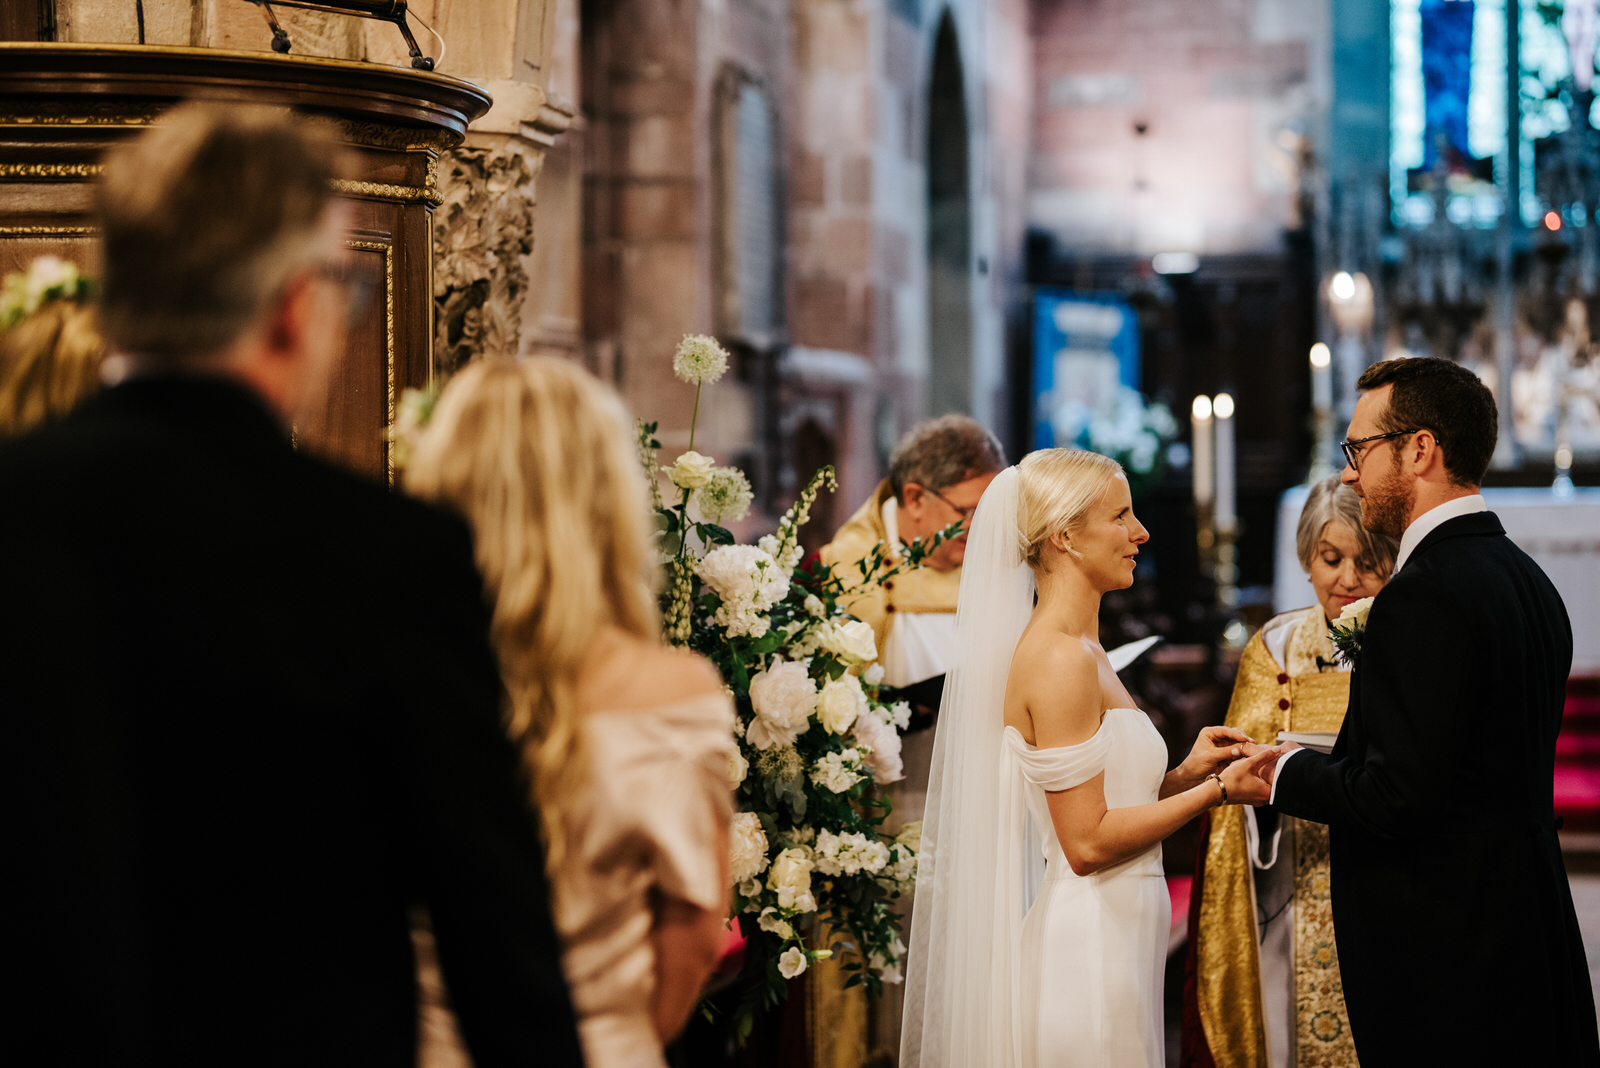 Bride and groom hold hands and exchange rings during wedding ceremony in Hawarden, Wales